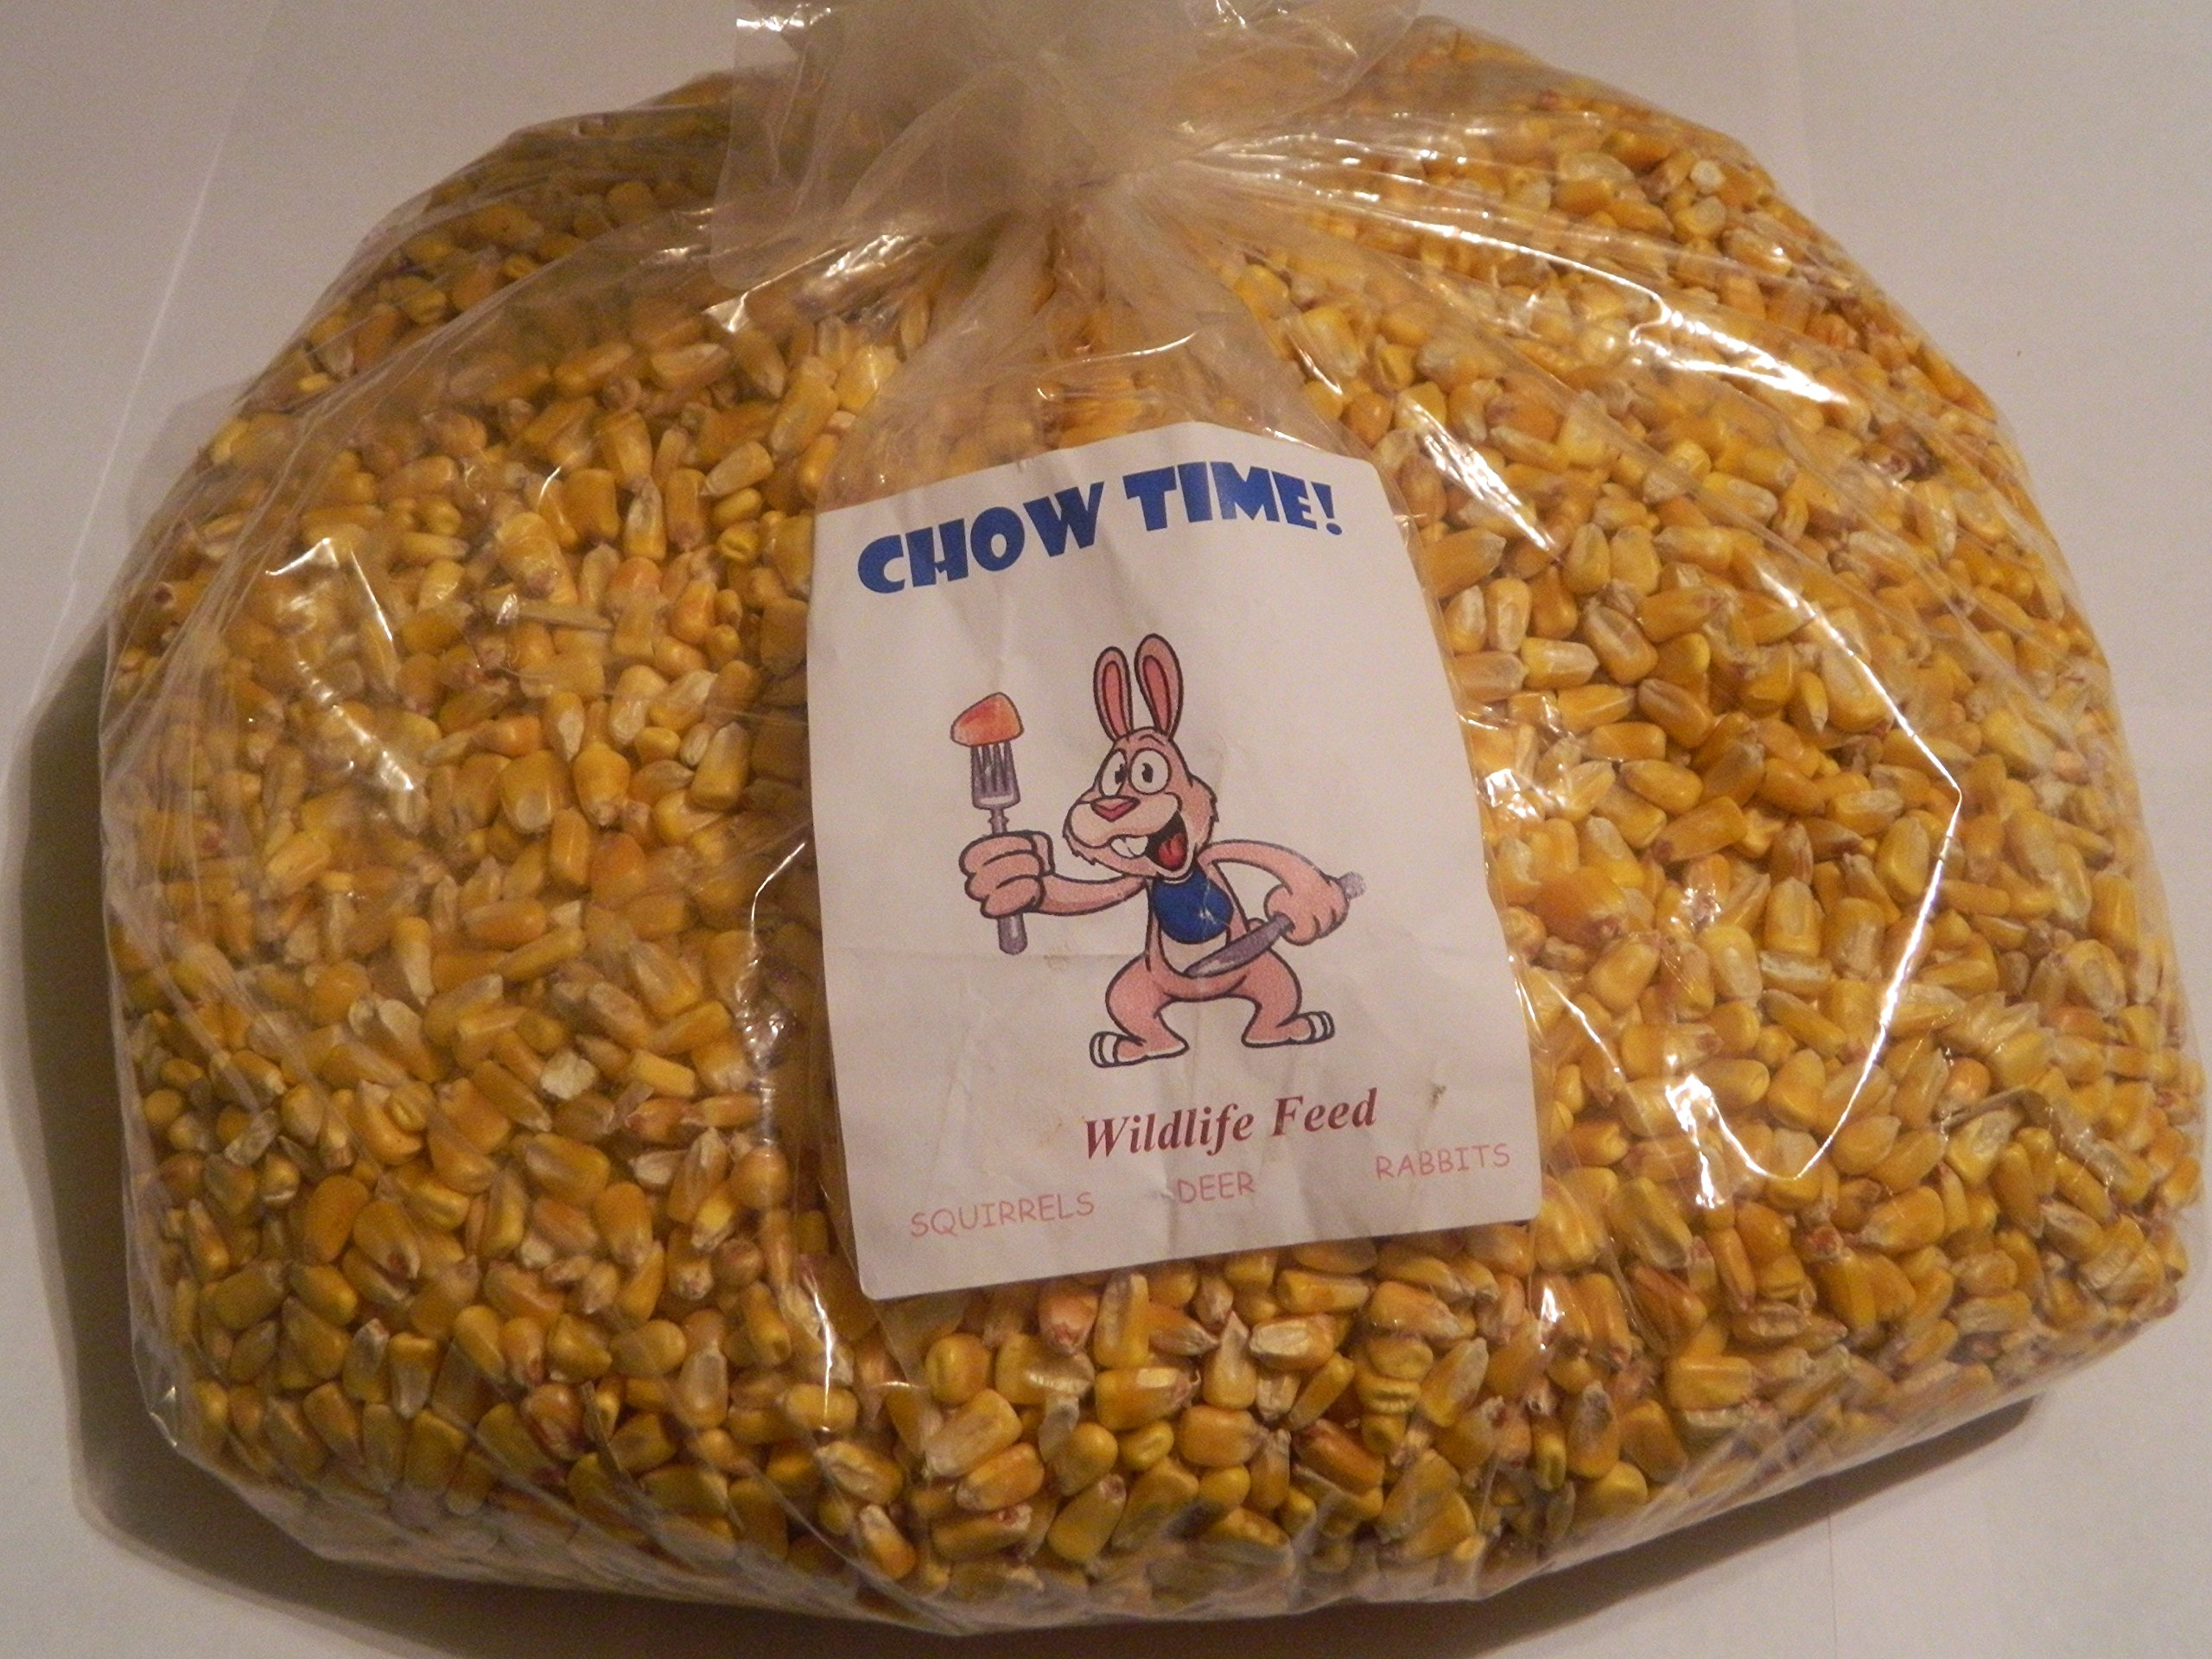 Chow Time! Squirrel Corn